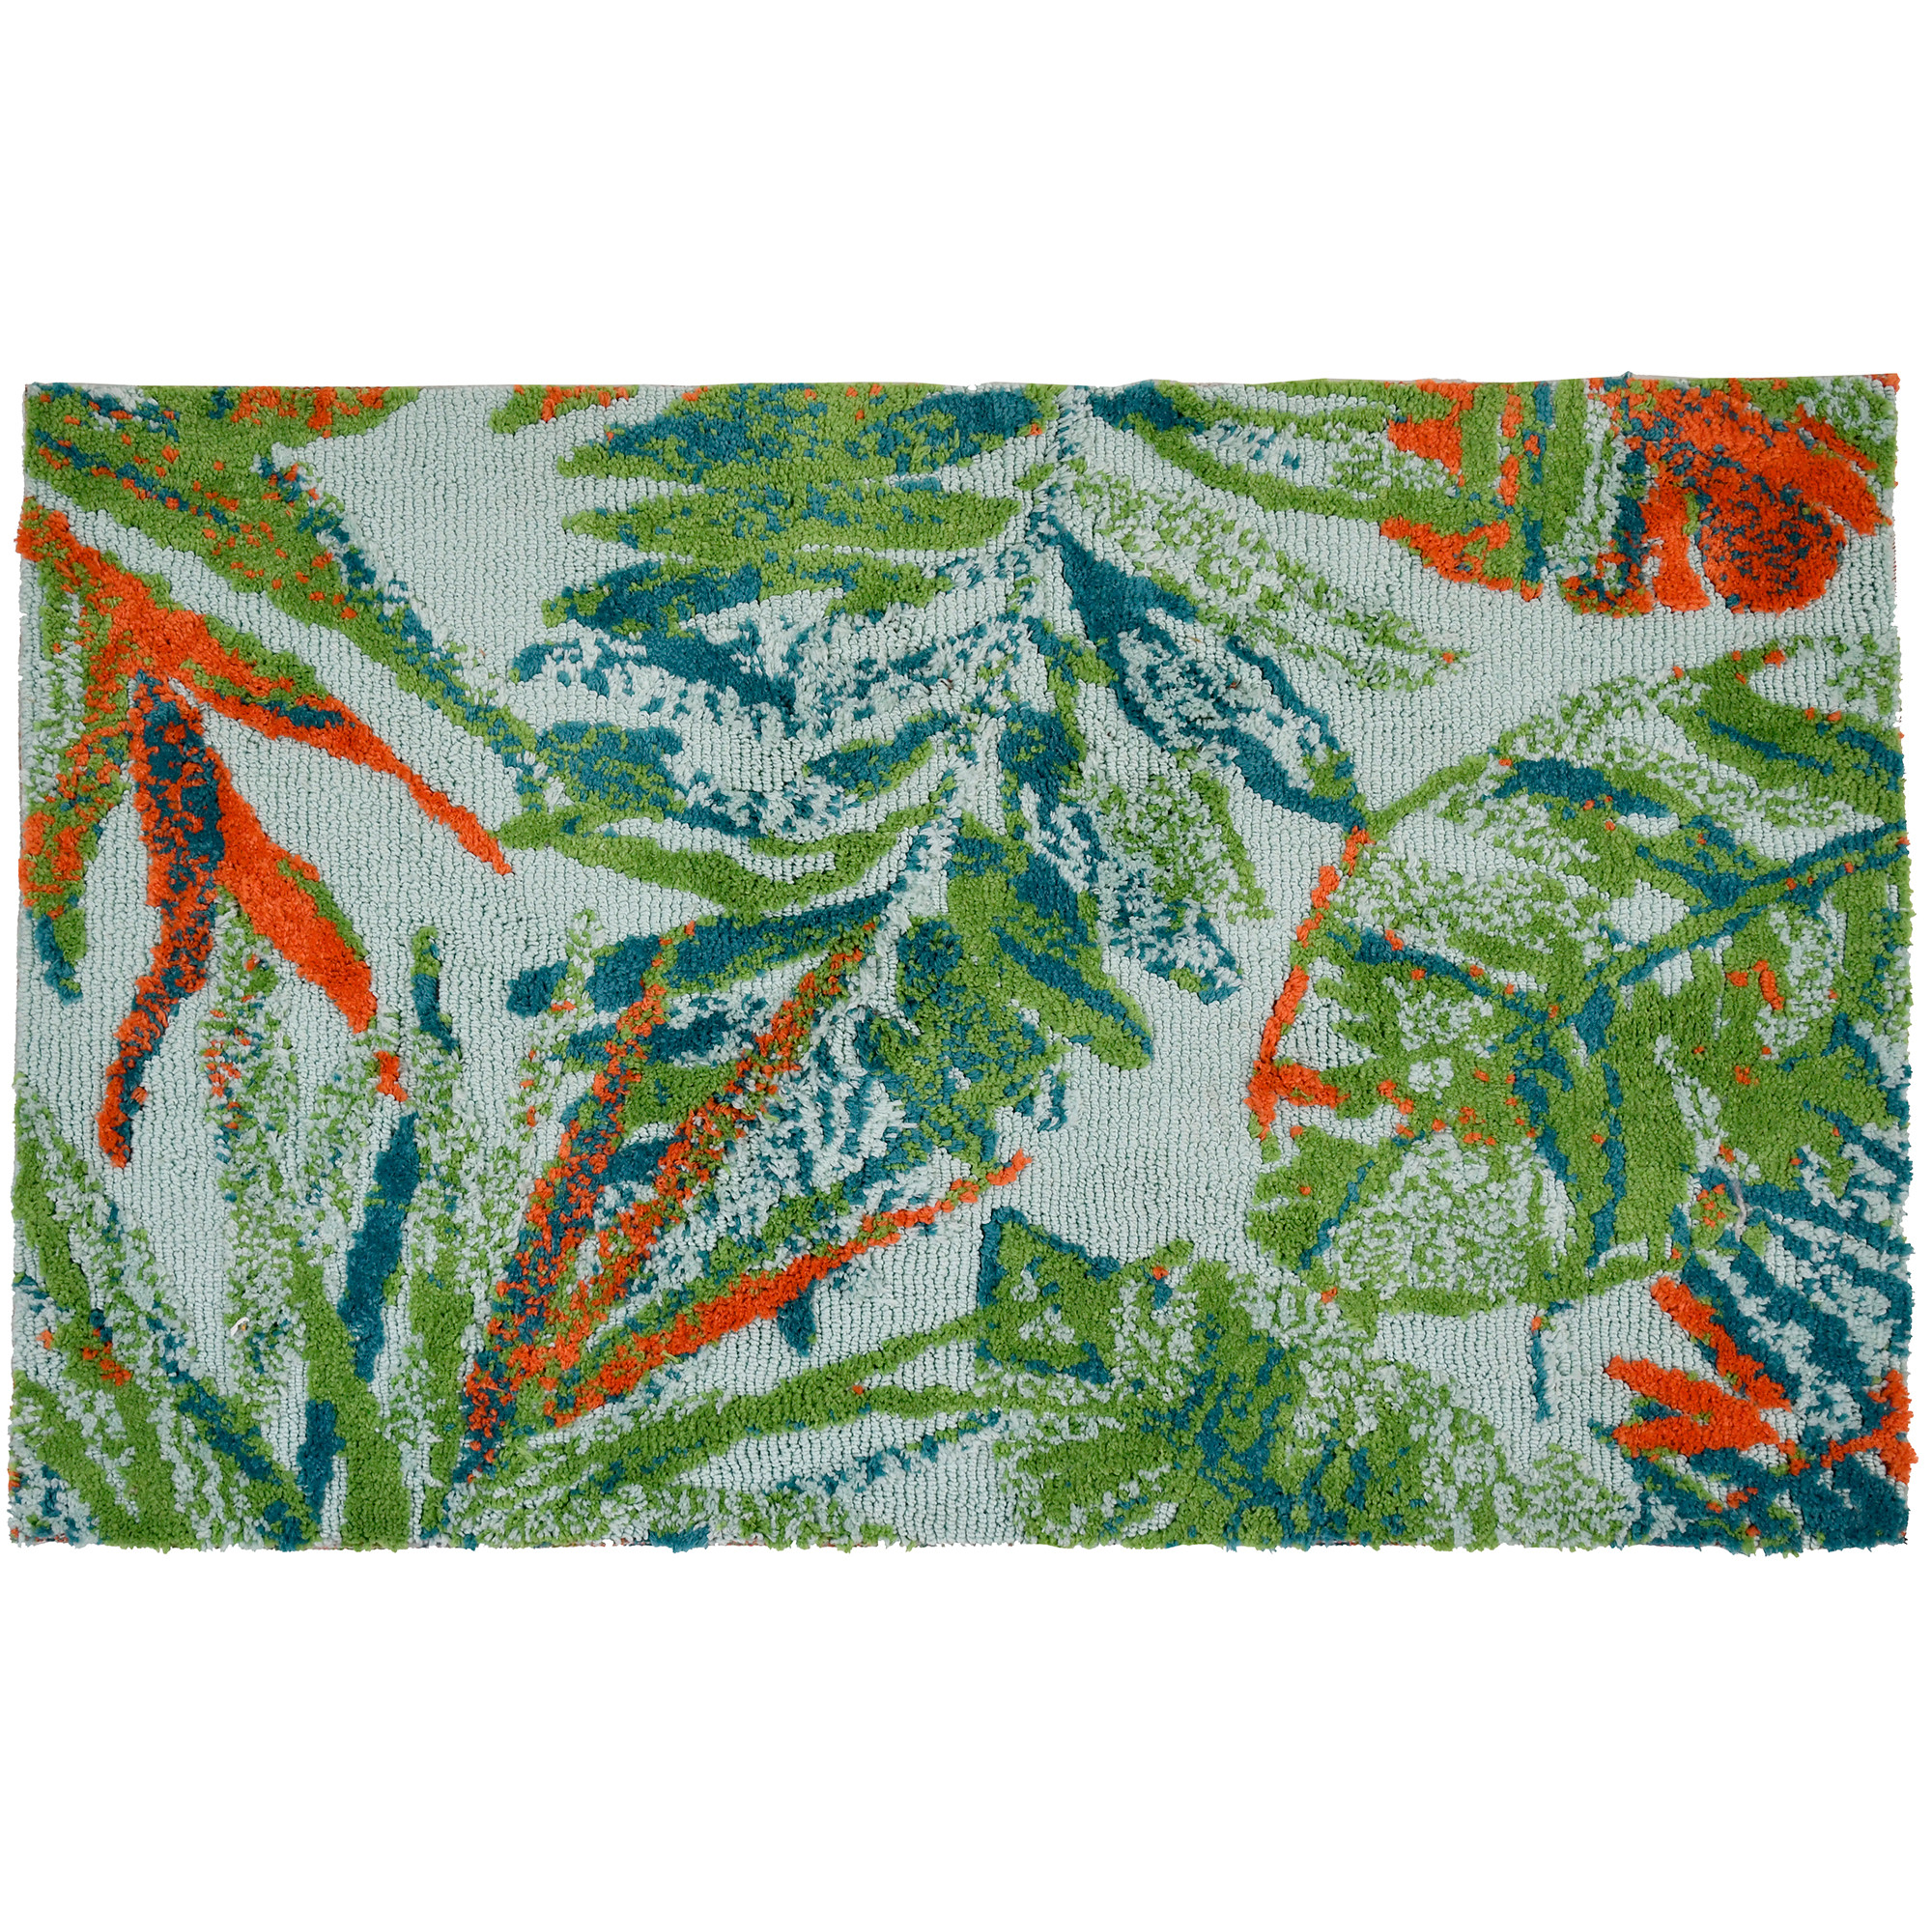 Sink your toes into the super soft tropics of this Homefires by Jellybean® accent rug. Artist Carol Robinson sketched the vibrancy of the tropics in a way that will fit in a variety of spaces. Crafted of microfiber this indoor only accent rug is super soft.